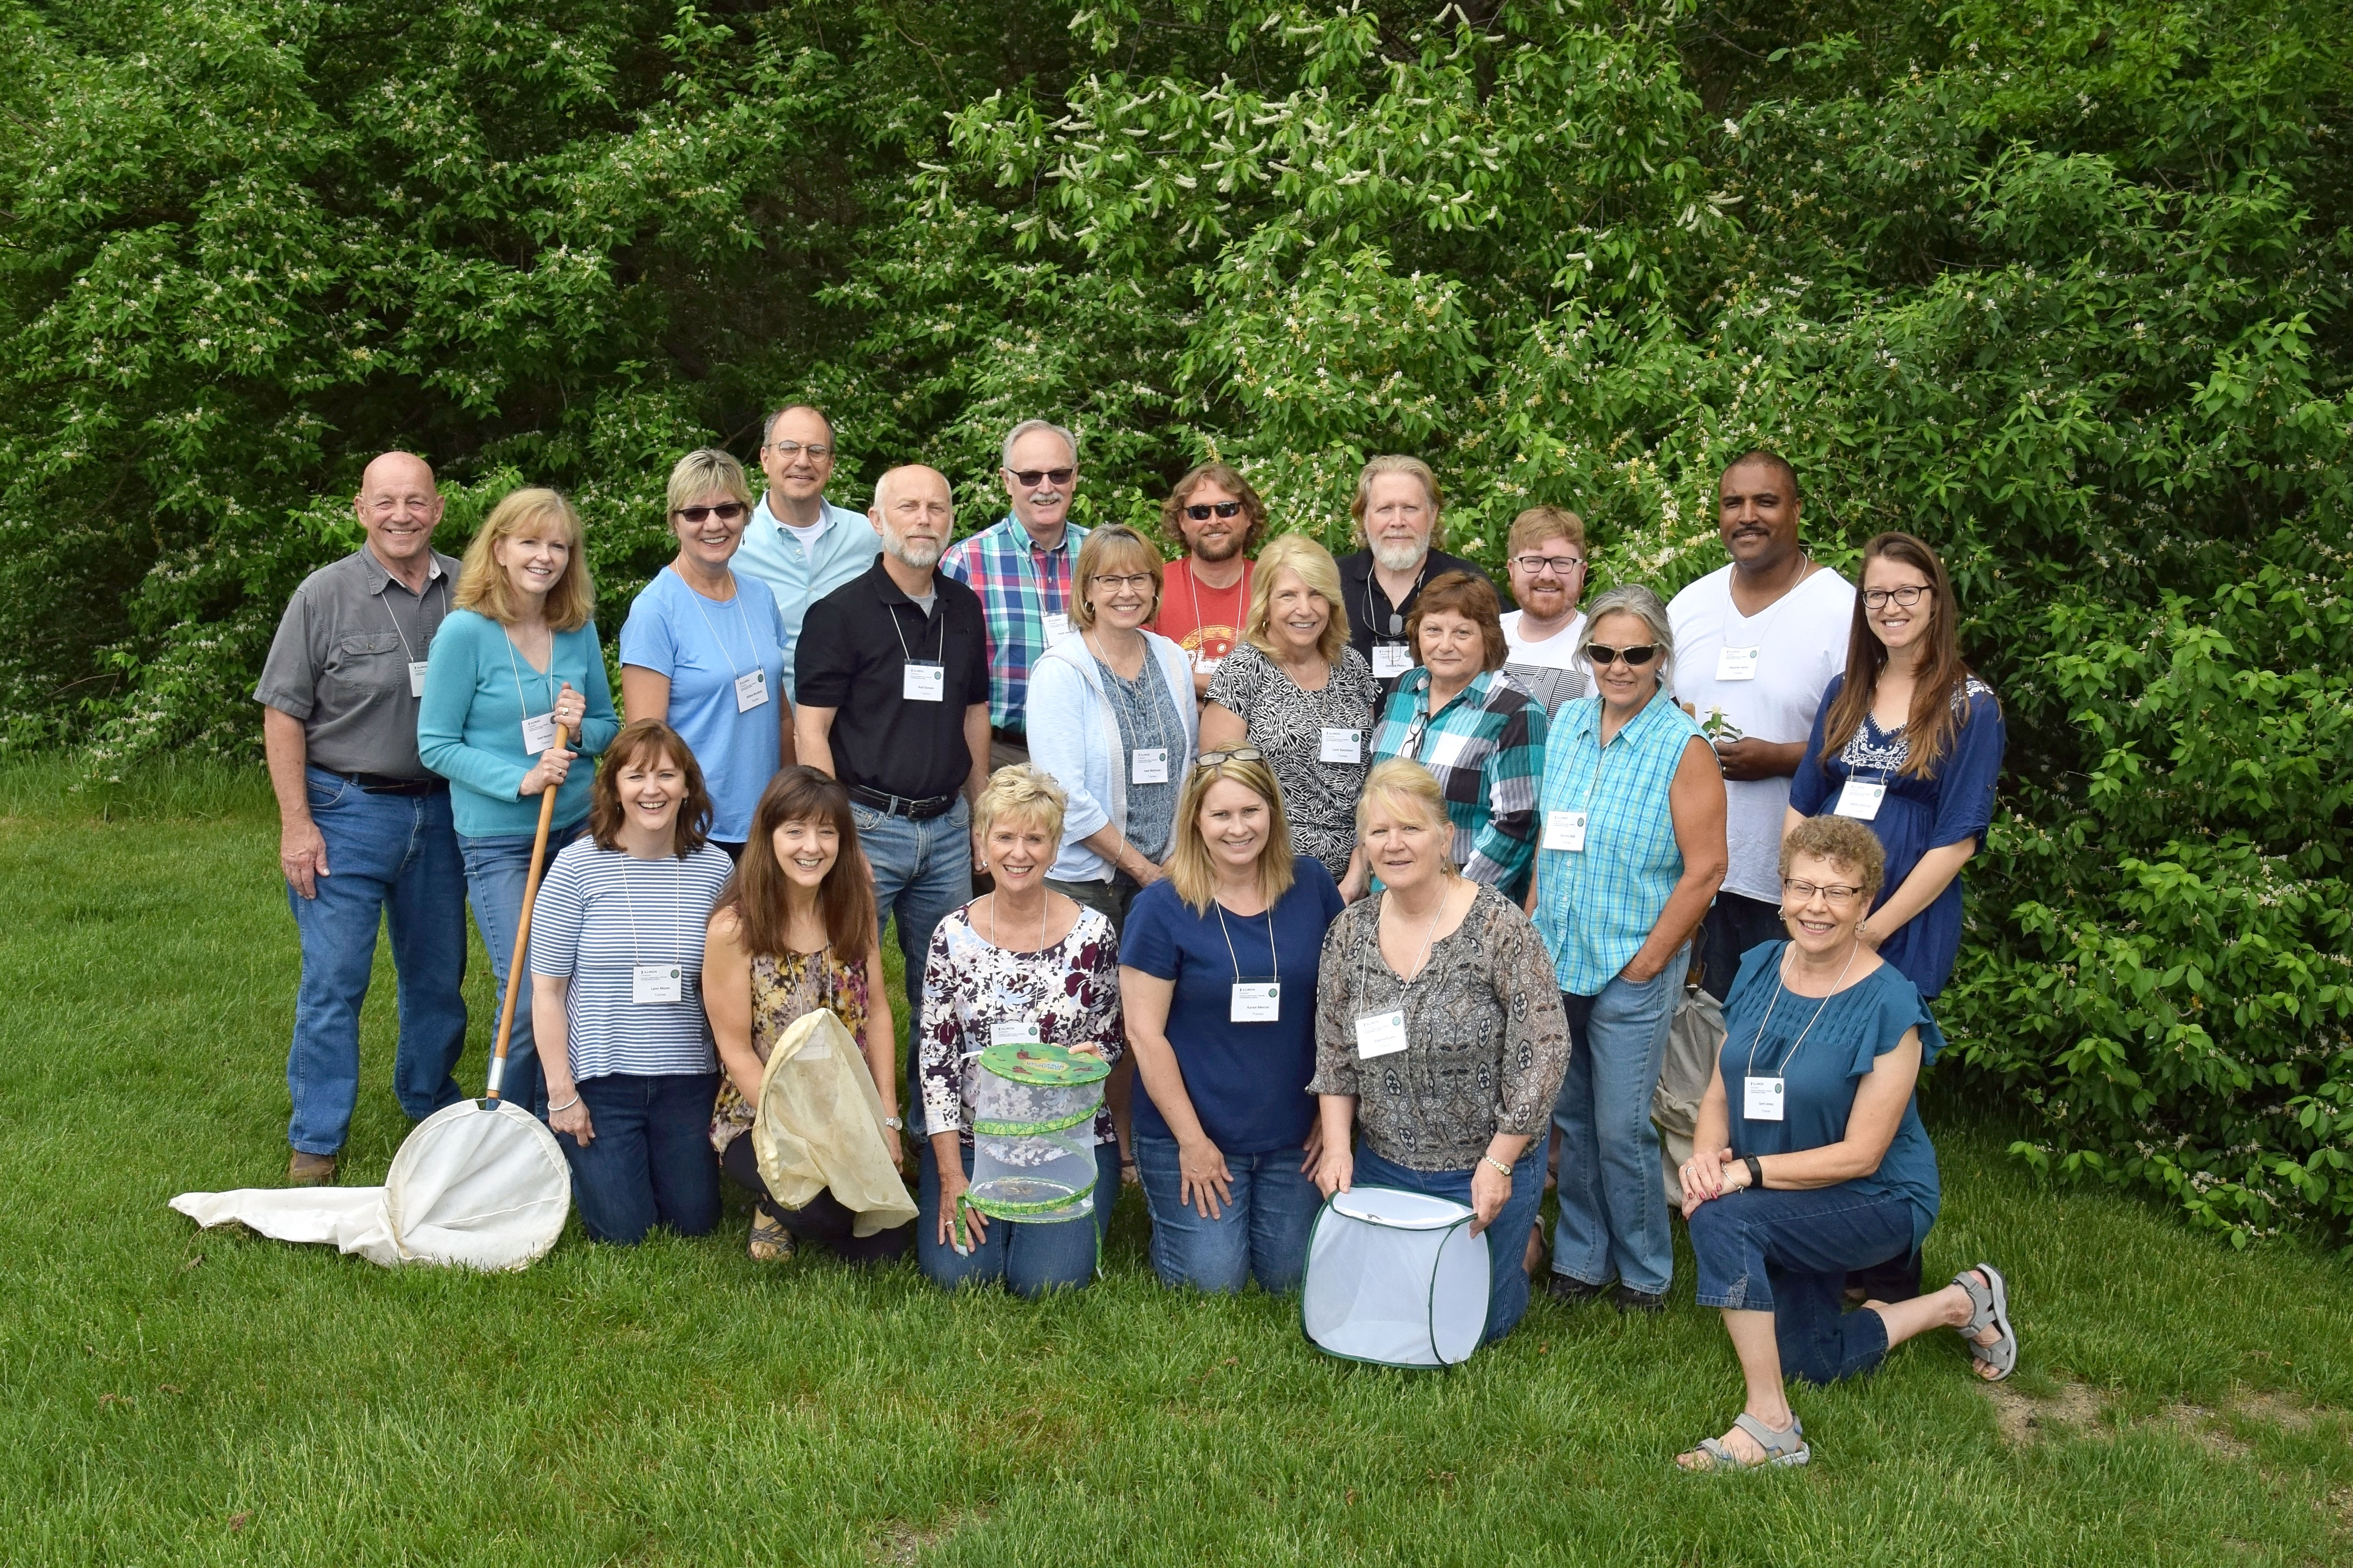 group of Extension Master Gardeners outside with trees in background